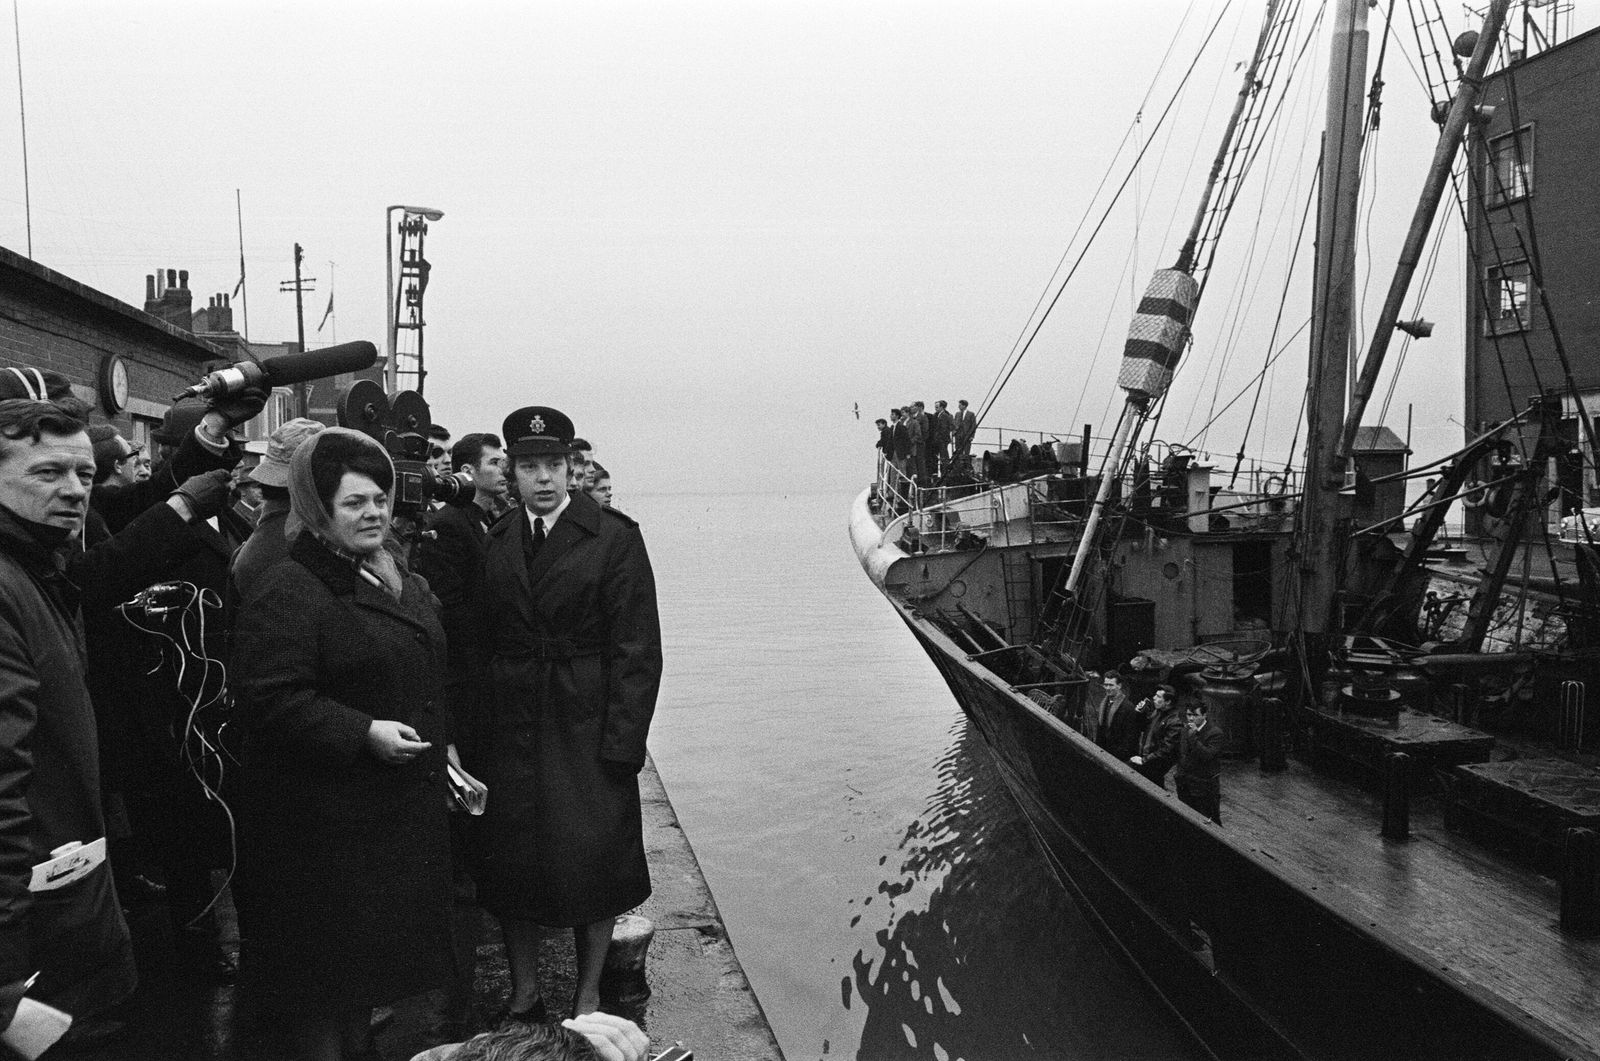 Hull Trawler Wives meeting and service, 1968